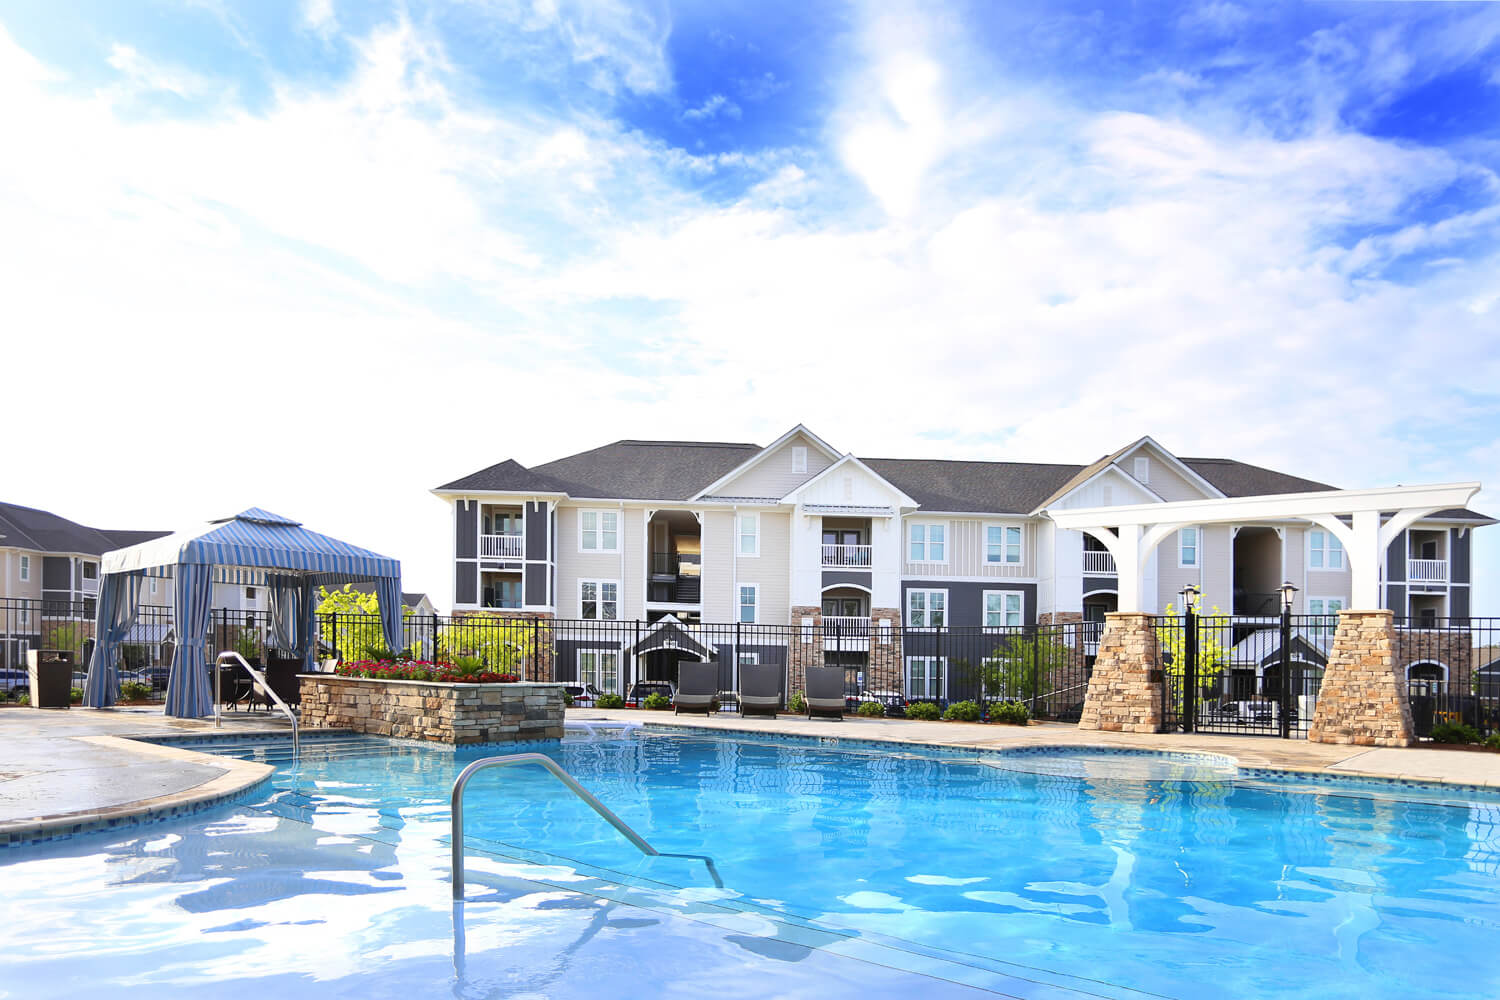 The Morgan Apartments Clubhouse Designed by Foshee Architecture - View of Pool Looking Towards the Apartment Buildings